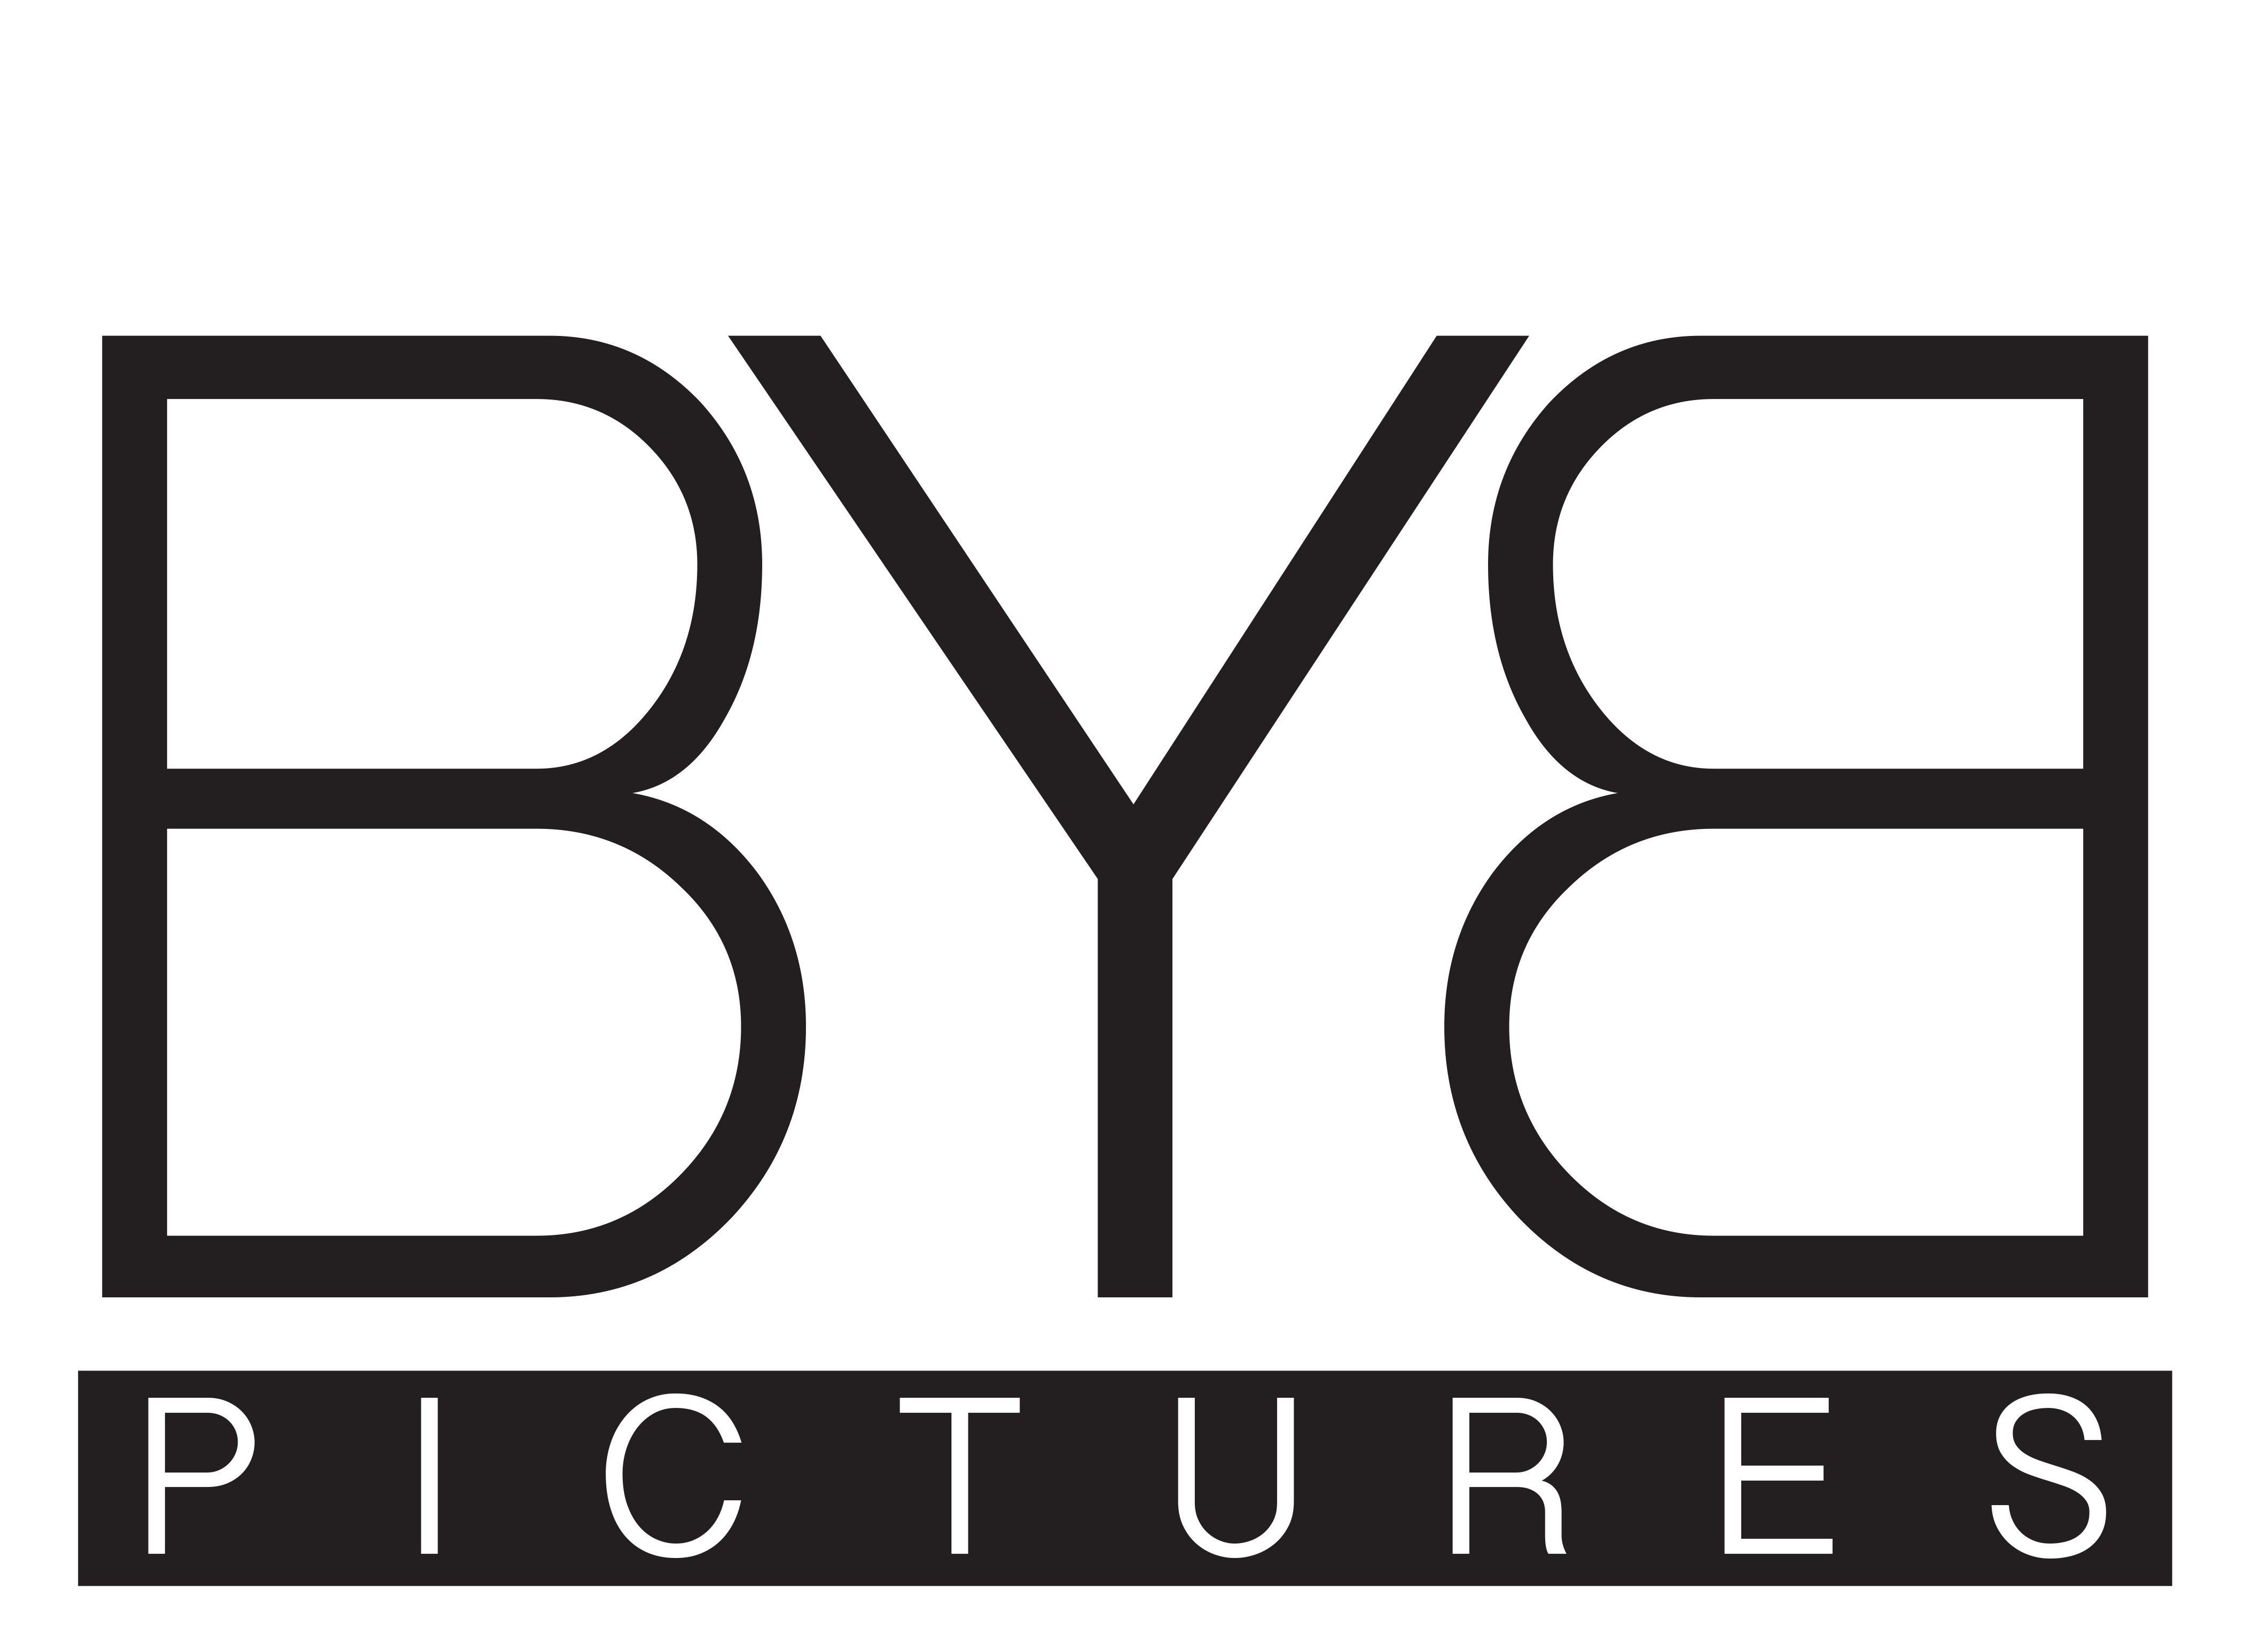 BYB Pictures